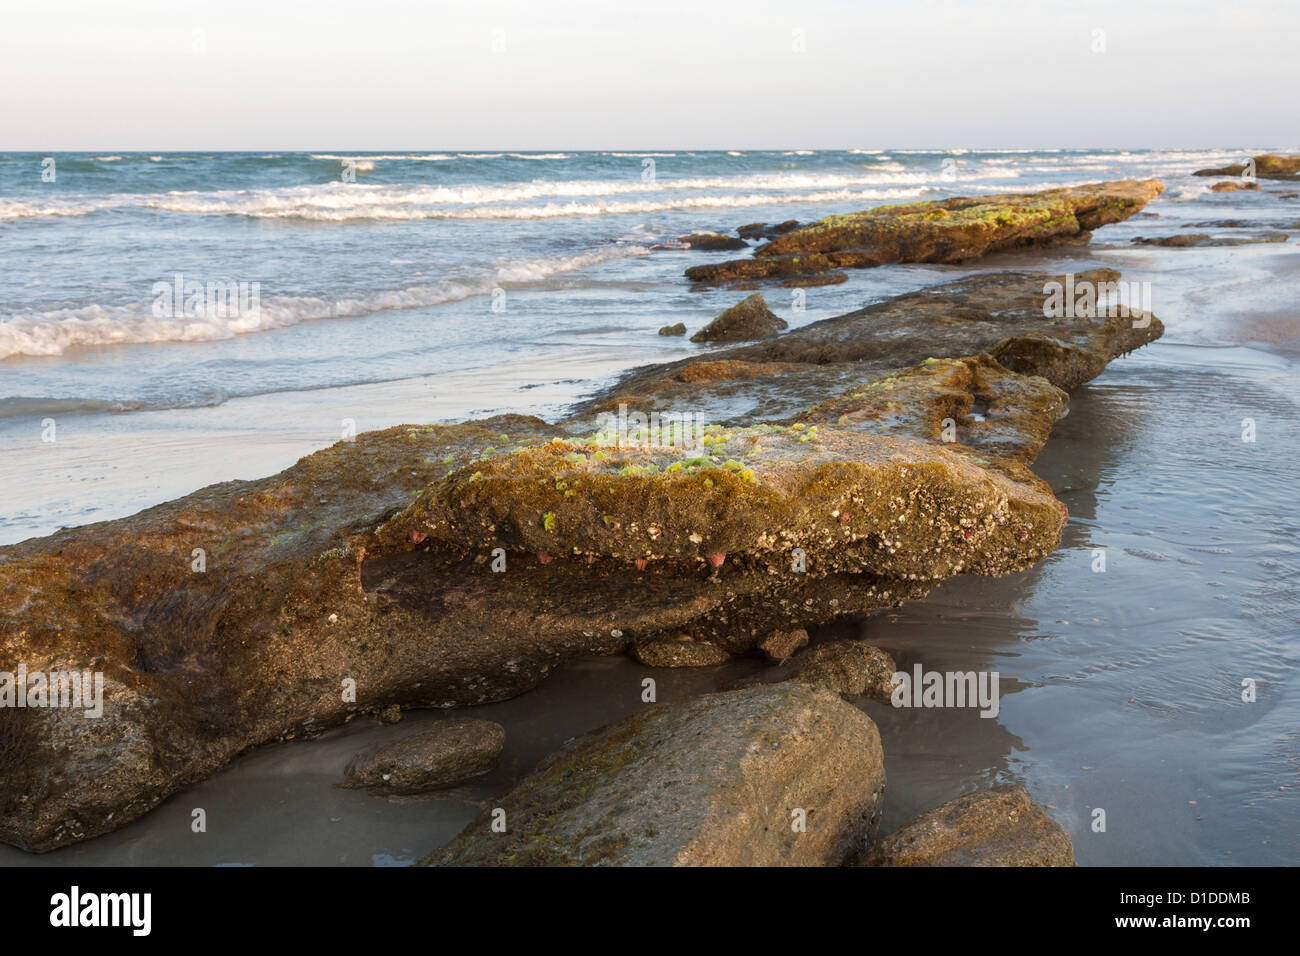 Coquina rock formations along coast of Atlantic Ocean at Washington Oaks Gardens State Park in Florida, USA - Stock Image